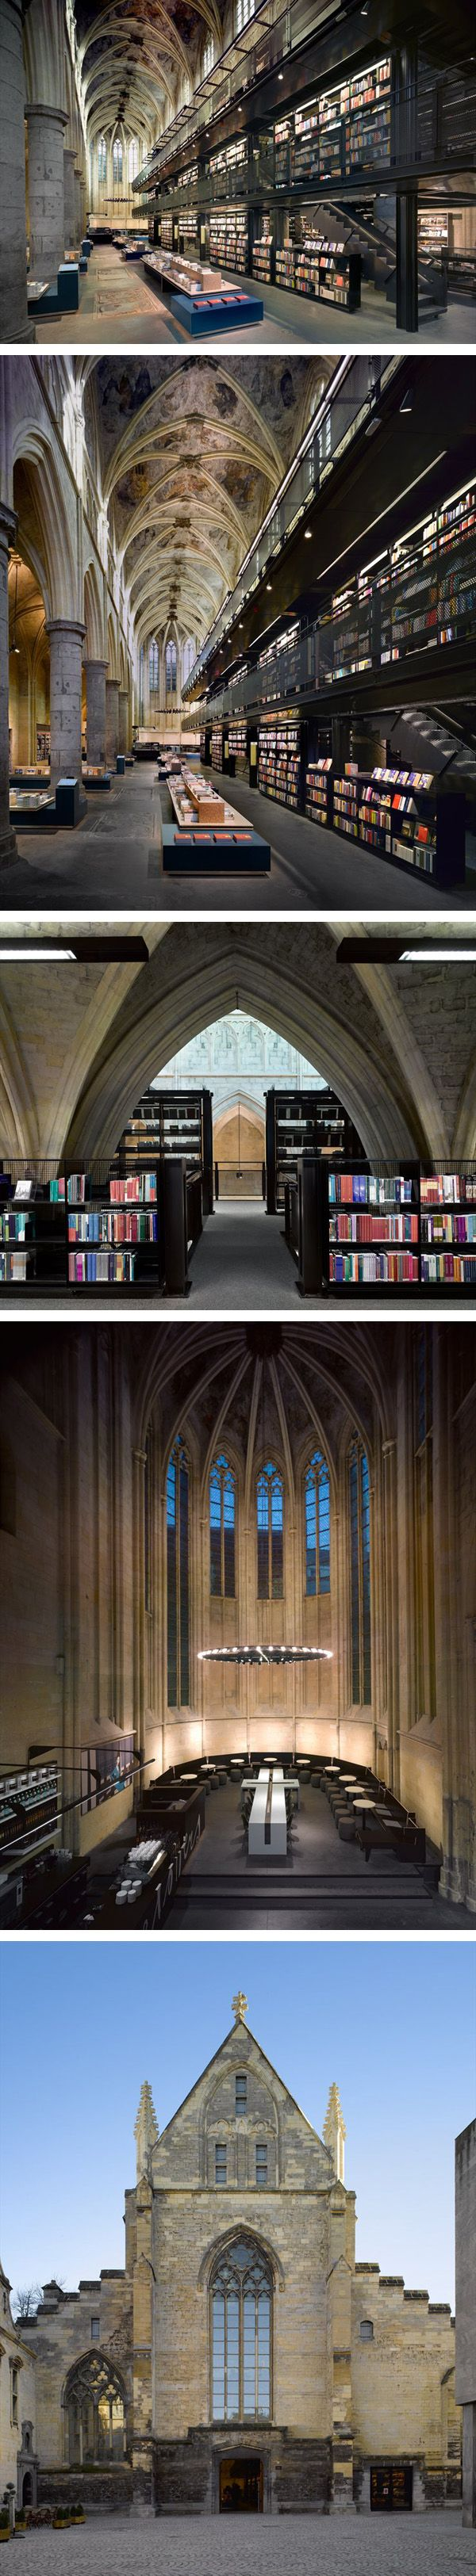 Can you think of a more impressive book shop? There's a beautiful one in Porto, Portugal... but nothing compared to this.